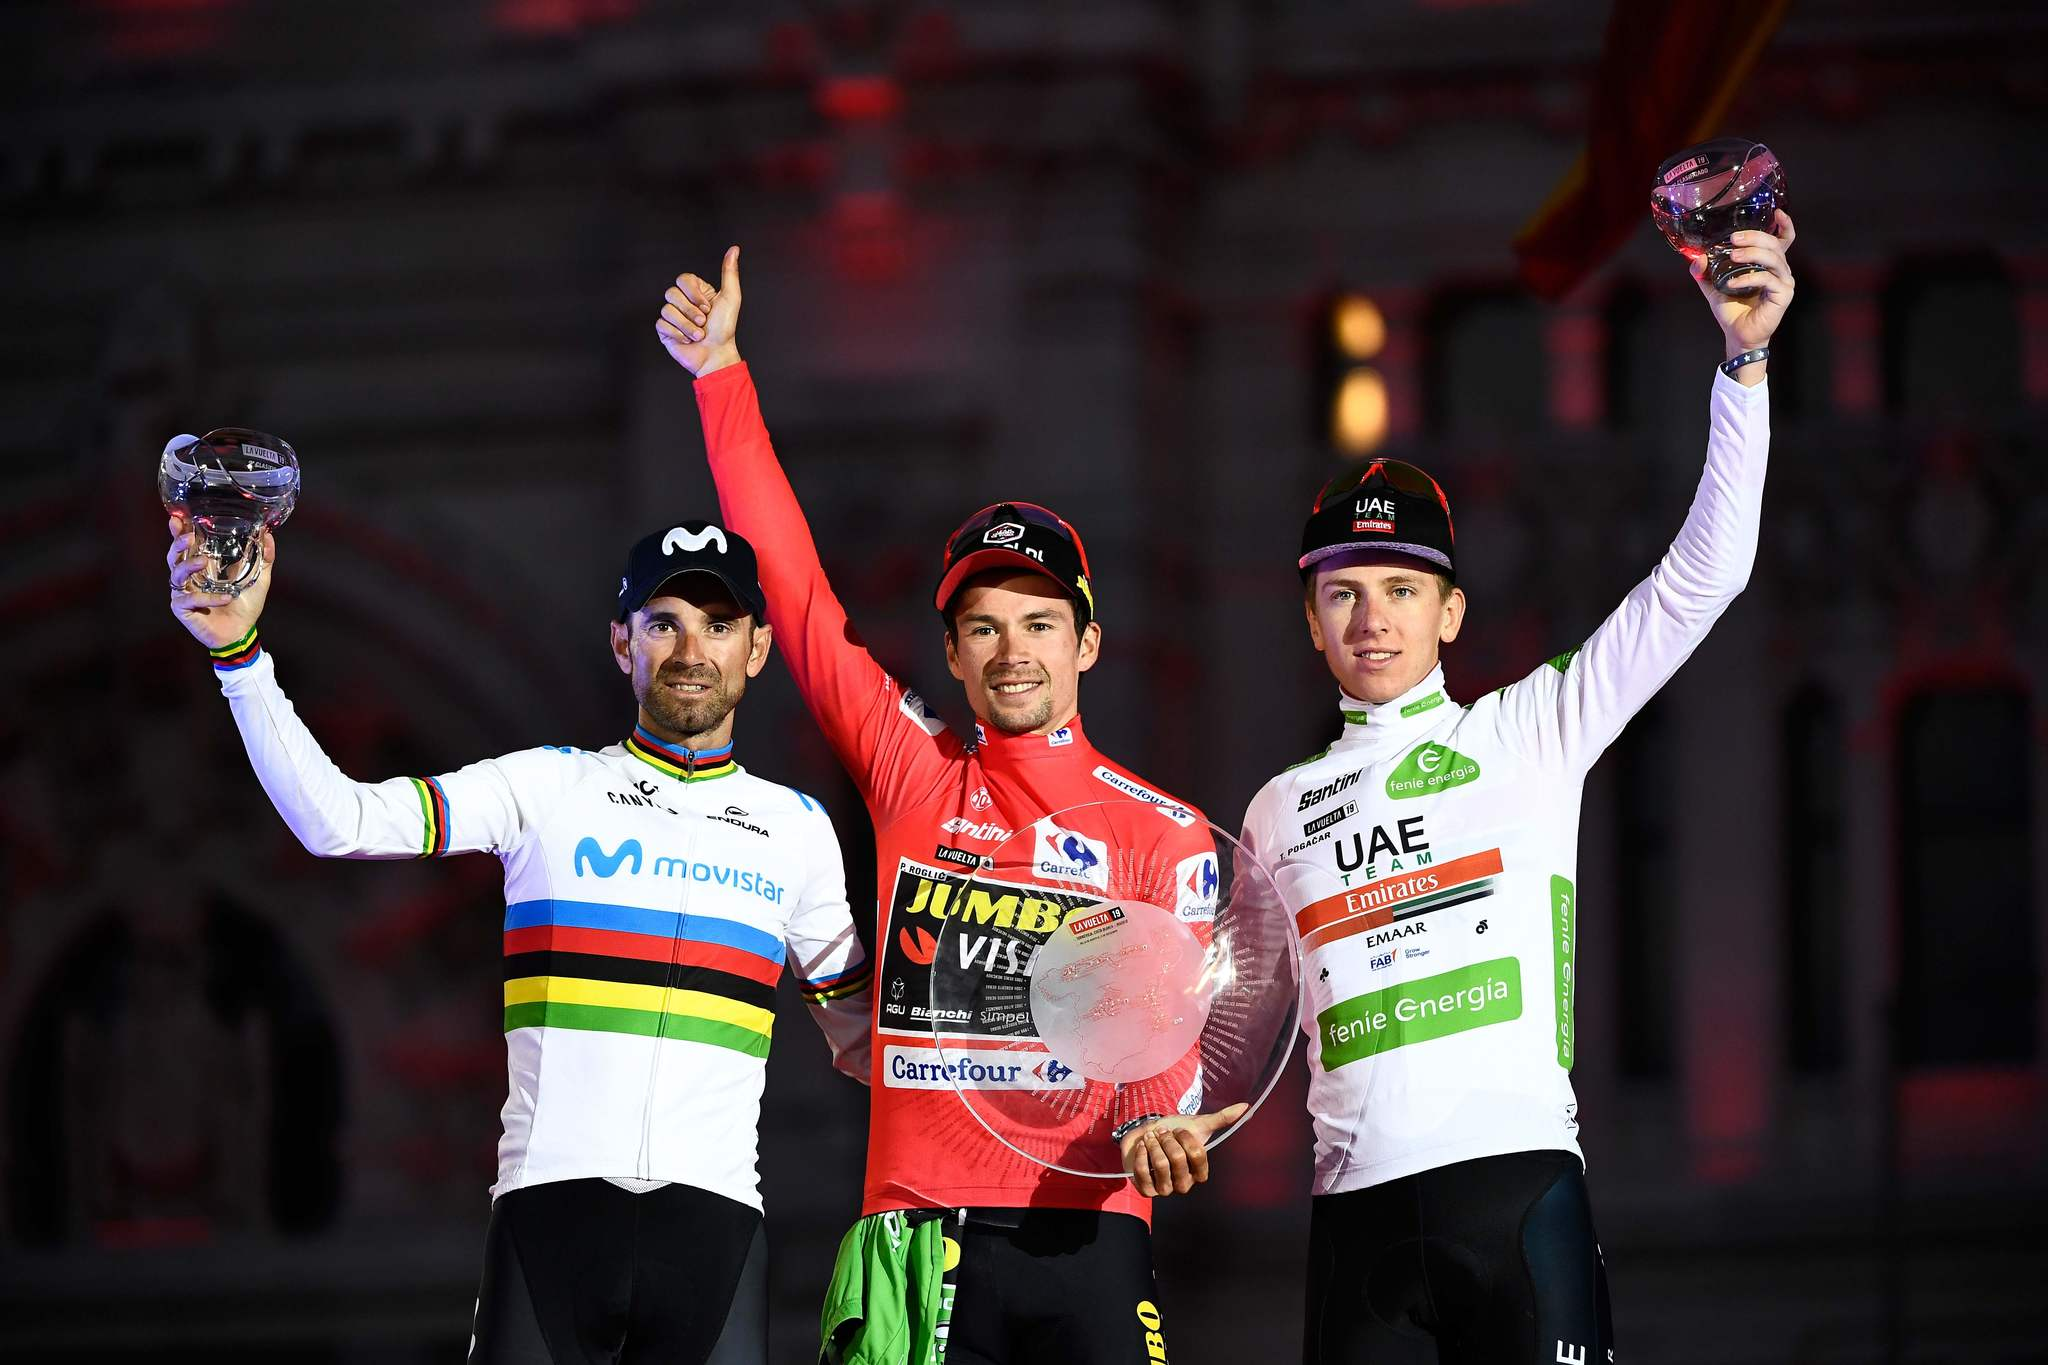 TOPSHOT - (LtoR) Second-placed Team Movistar rider Spains <HIT>Alejandro</HIT><HIT>Valverde</HIT>, winner Team Jumbo rider Slovenias Primoz Roglic and third-placed Team UAE Emirates rider Slovenias Tadej Pogacar, celebrate on the podium after the 21st and and last stage of the 2019 La Vuelta cycling Tour of Spain, a 106,6 km race from Fuenlabrada to Madrid on September 15, 2019. (Photo by OSCAR DEL POZO / AFP)